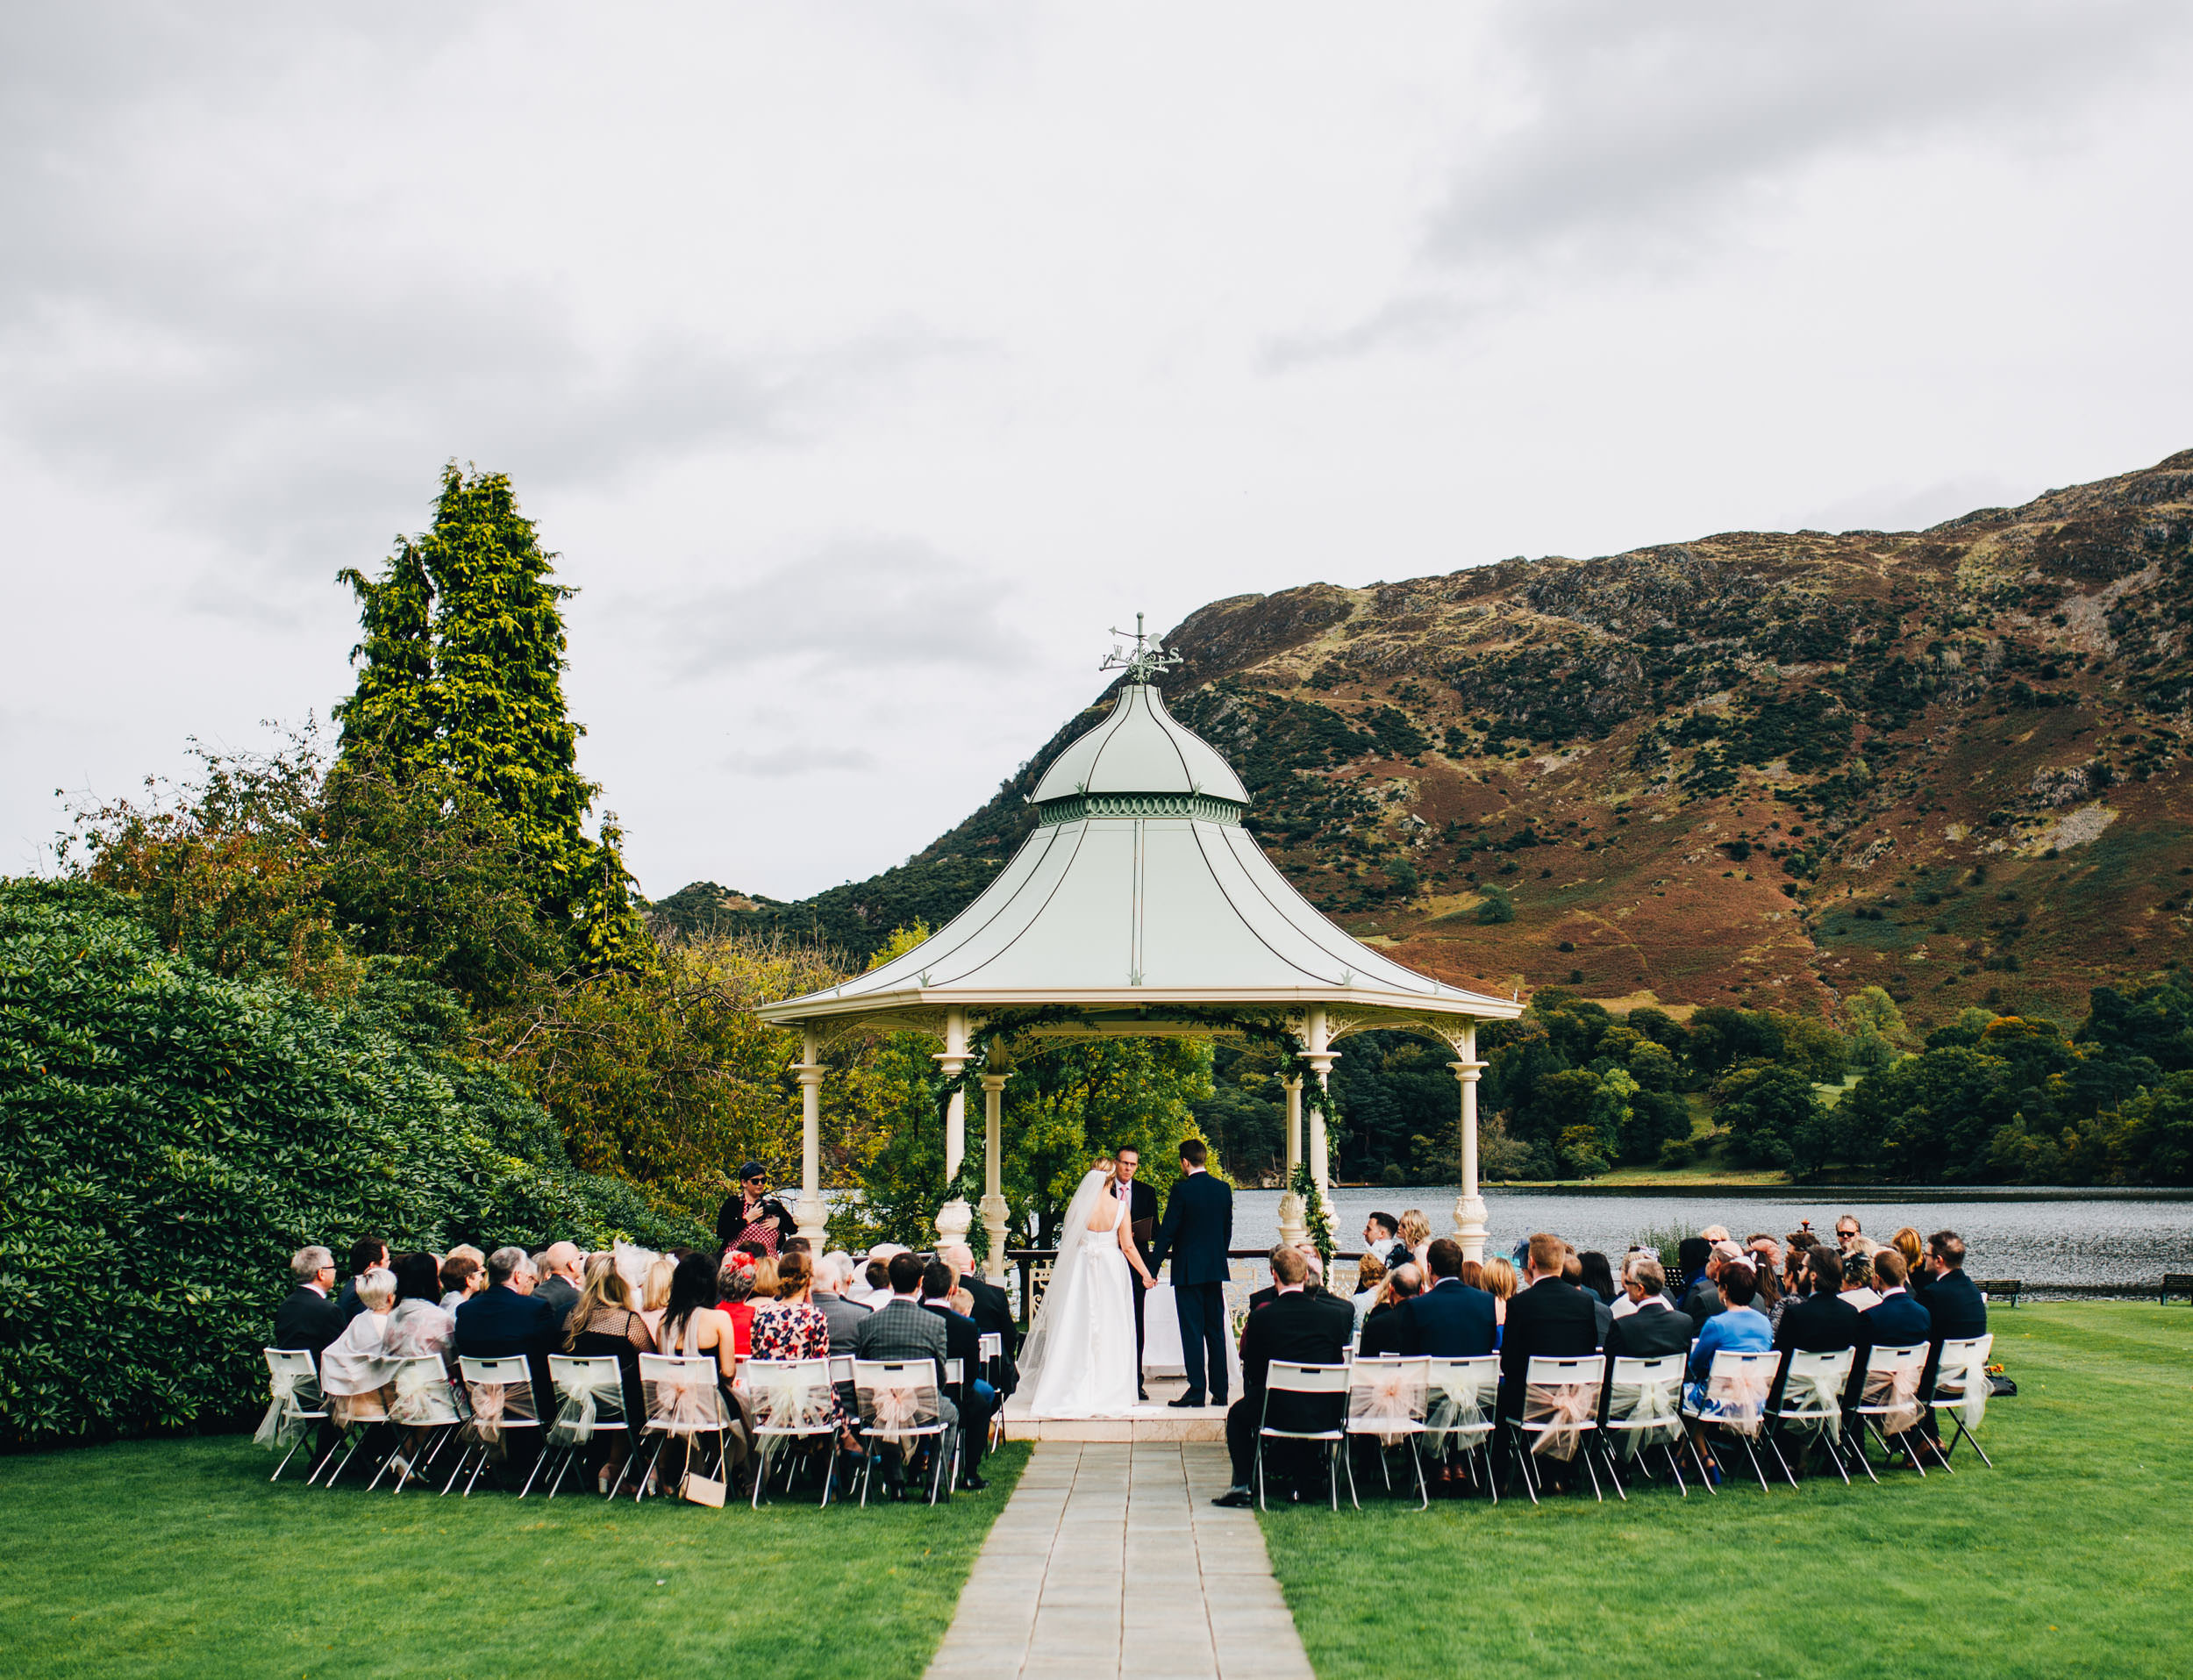 The Inn on the Lake - beautiful backdrop for a wedding ceremony